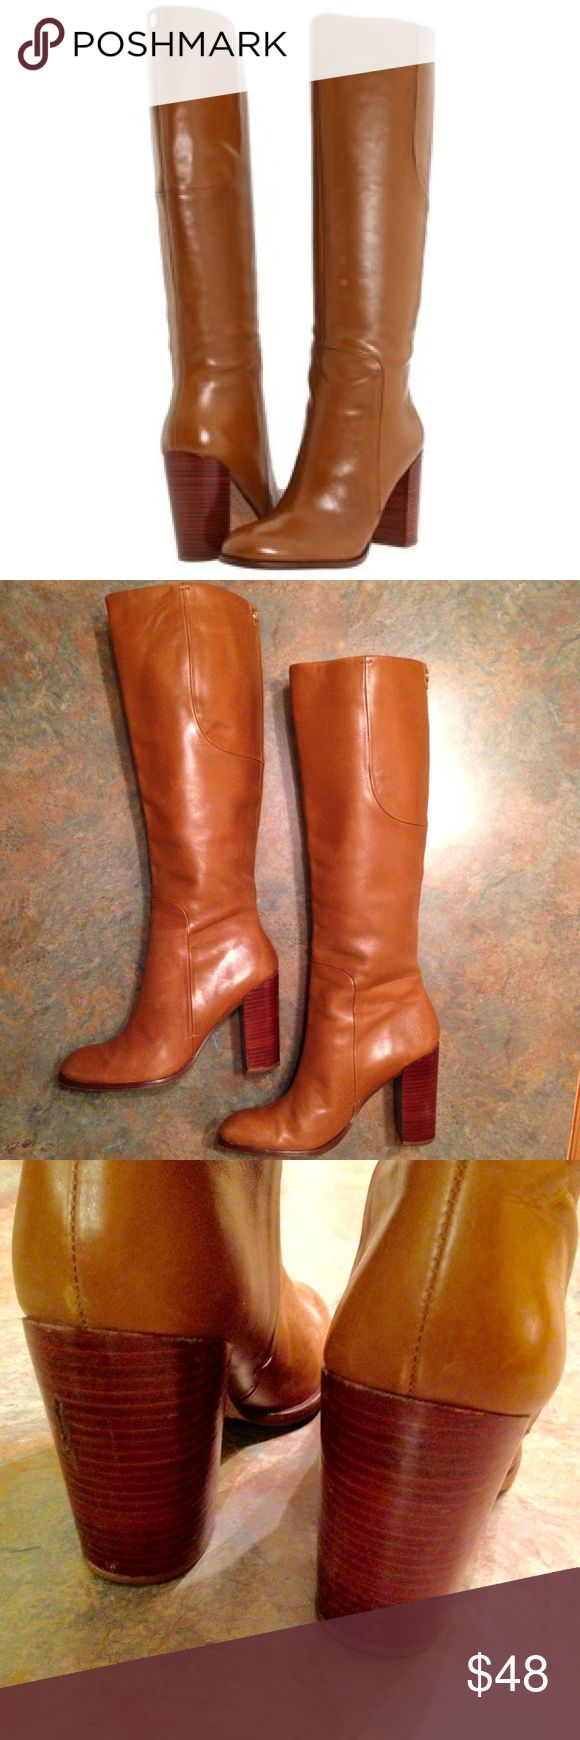 """Ivanka Trump Kamila Knee High Boots Ivanka Trump Kamila Knee High Boots. Size 7. Straight shaft leather riding boot in beautiful camel with 18"""" shaft measured from arch, 3.5"""" stacked heel, and 14.5"""" boot opening. In excellent condition. Note flaw on heel of left boot...I used shoe polish to match the flaw to the heel color. Ivanka Trump Shoes Heeled Boots"""